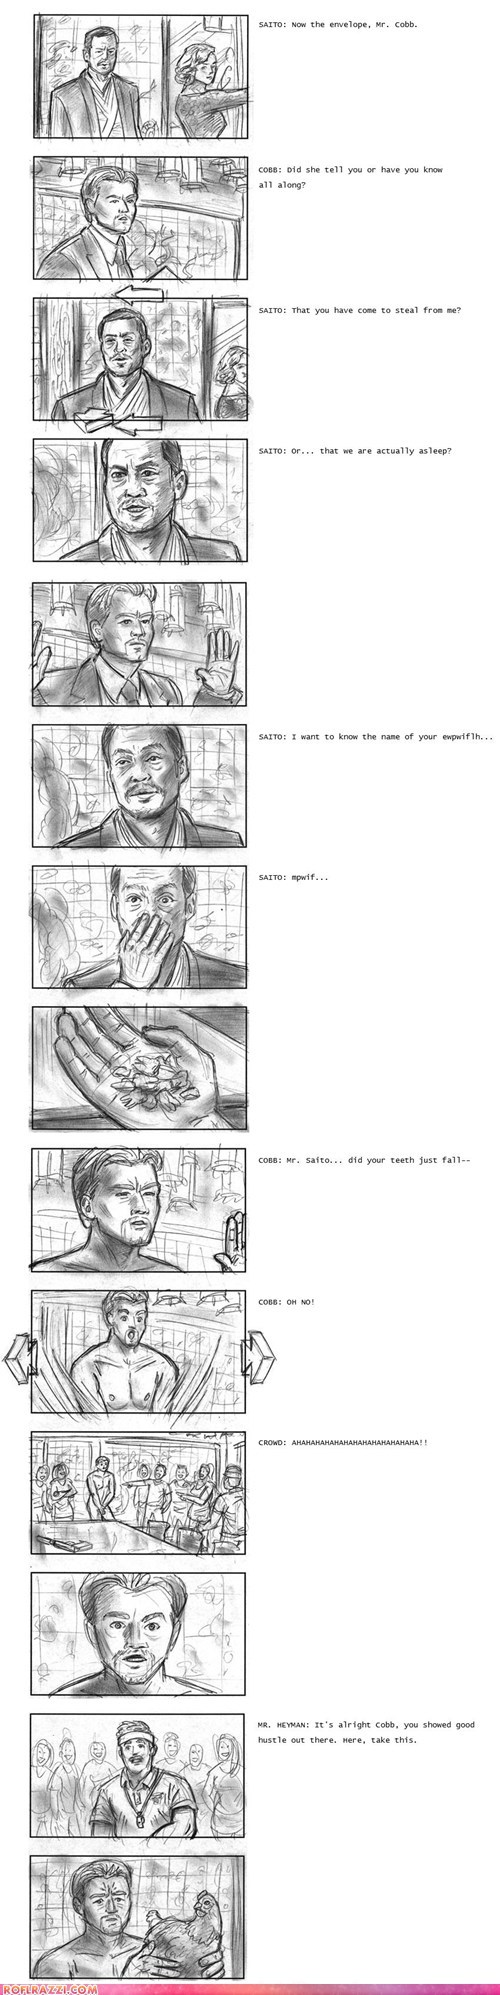 actor art celeb comic funny Inception leonardo dicaprio Movie - 6472168704